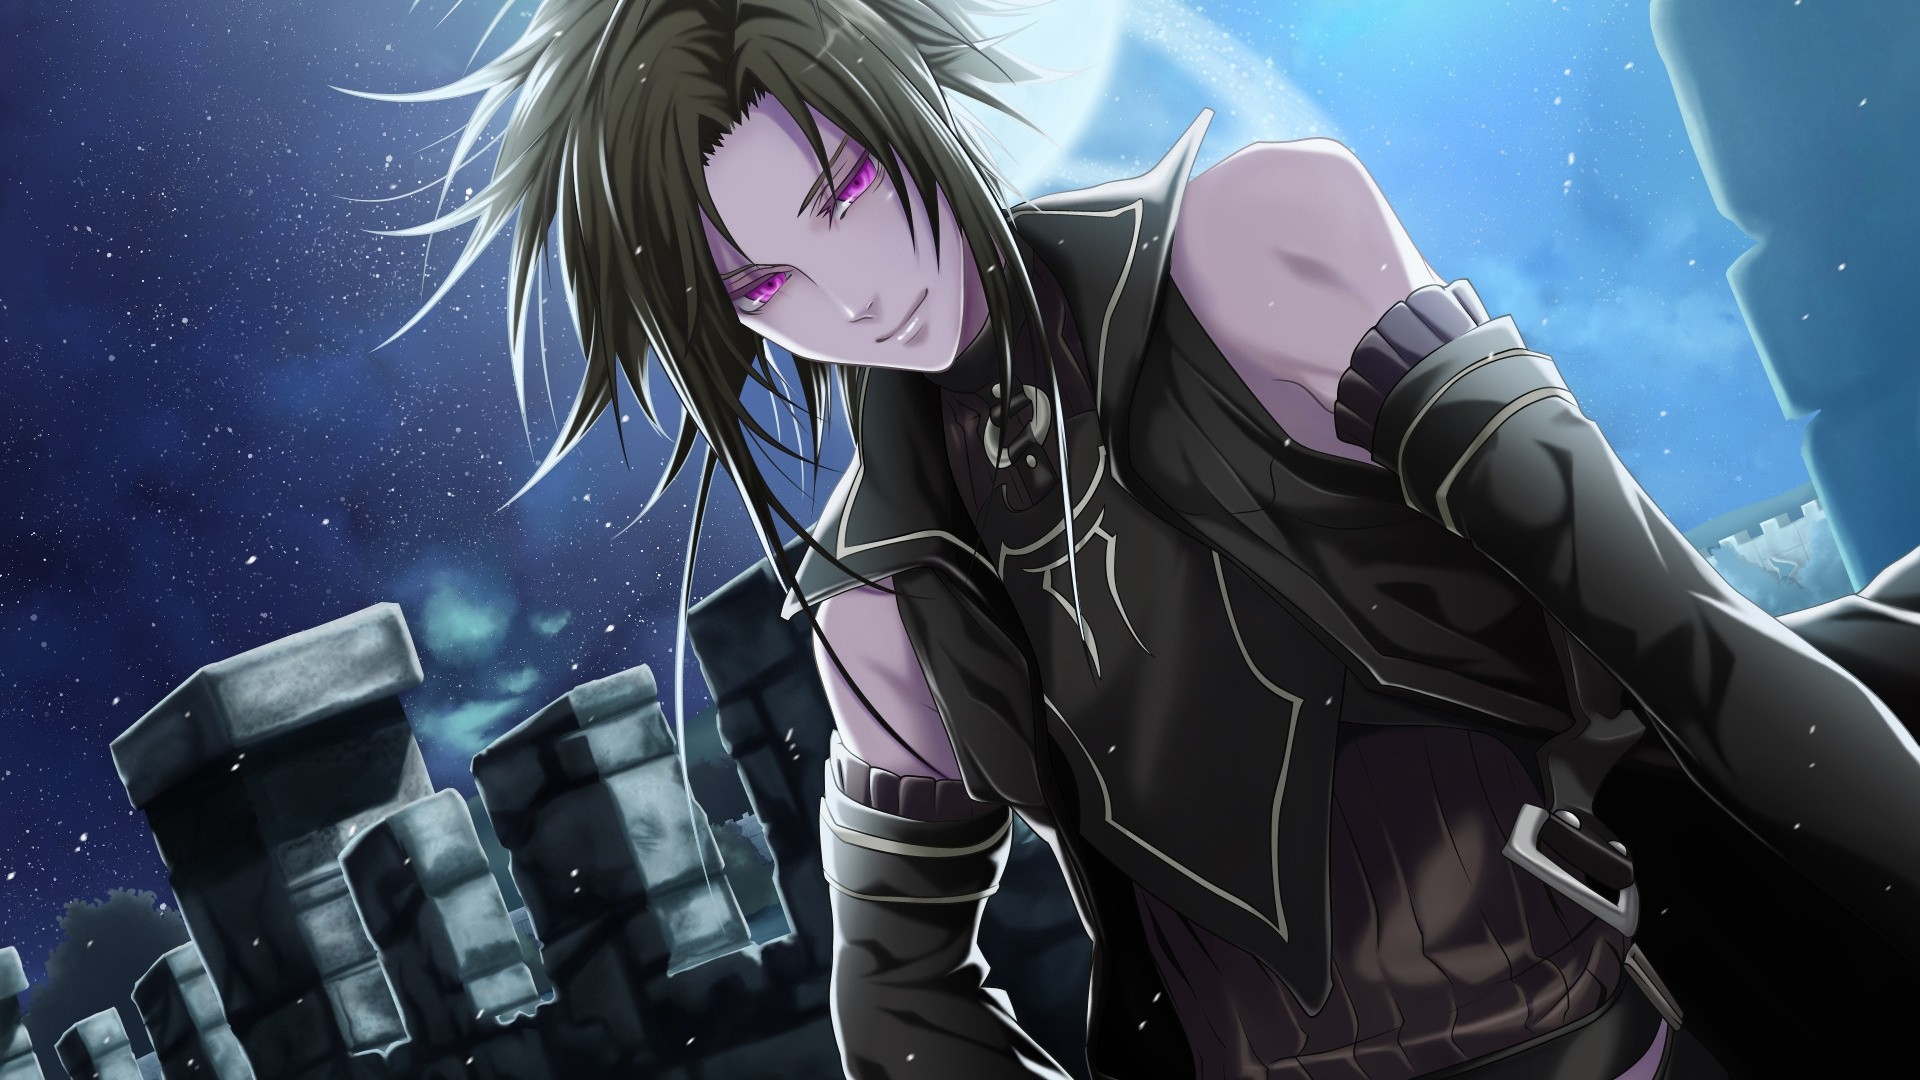 Anime Guy With Black Hair Wallpaper for pc